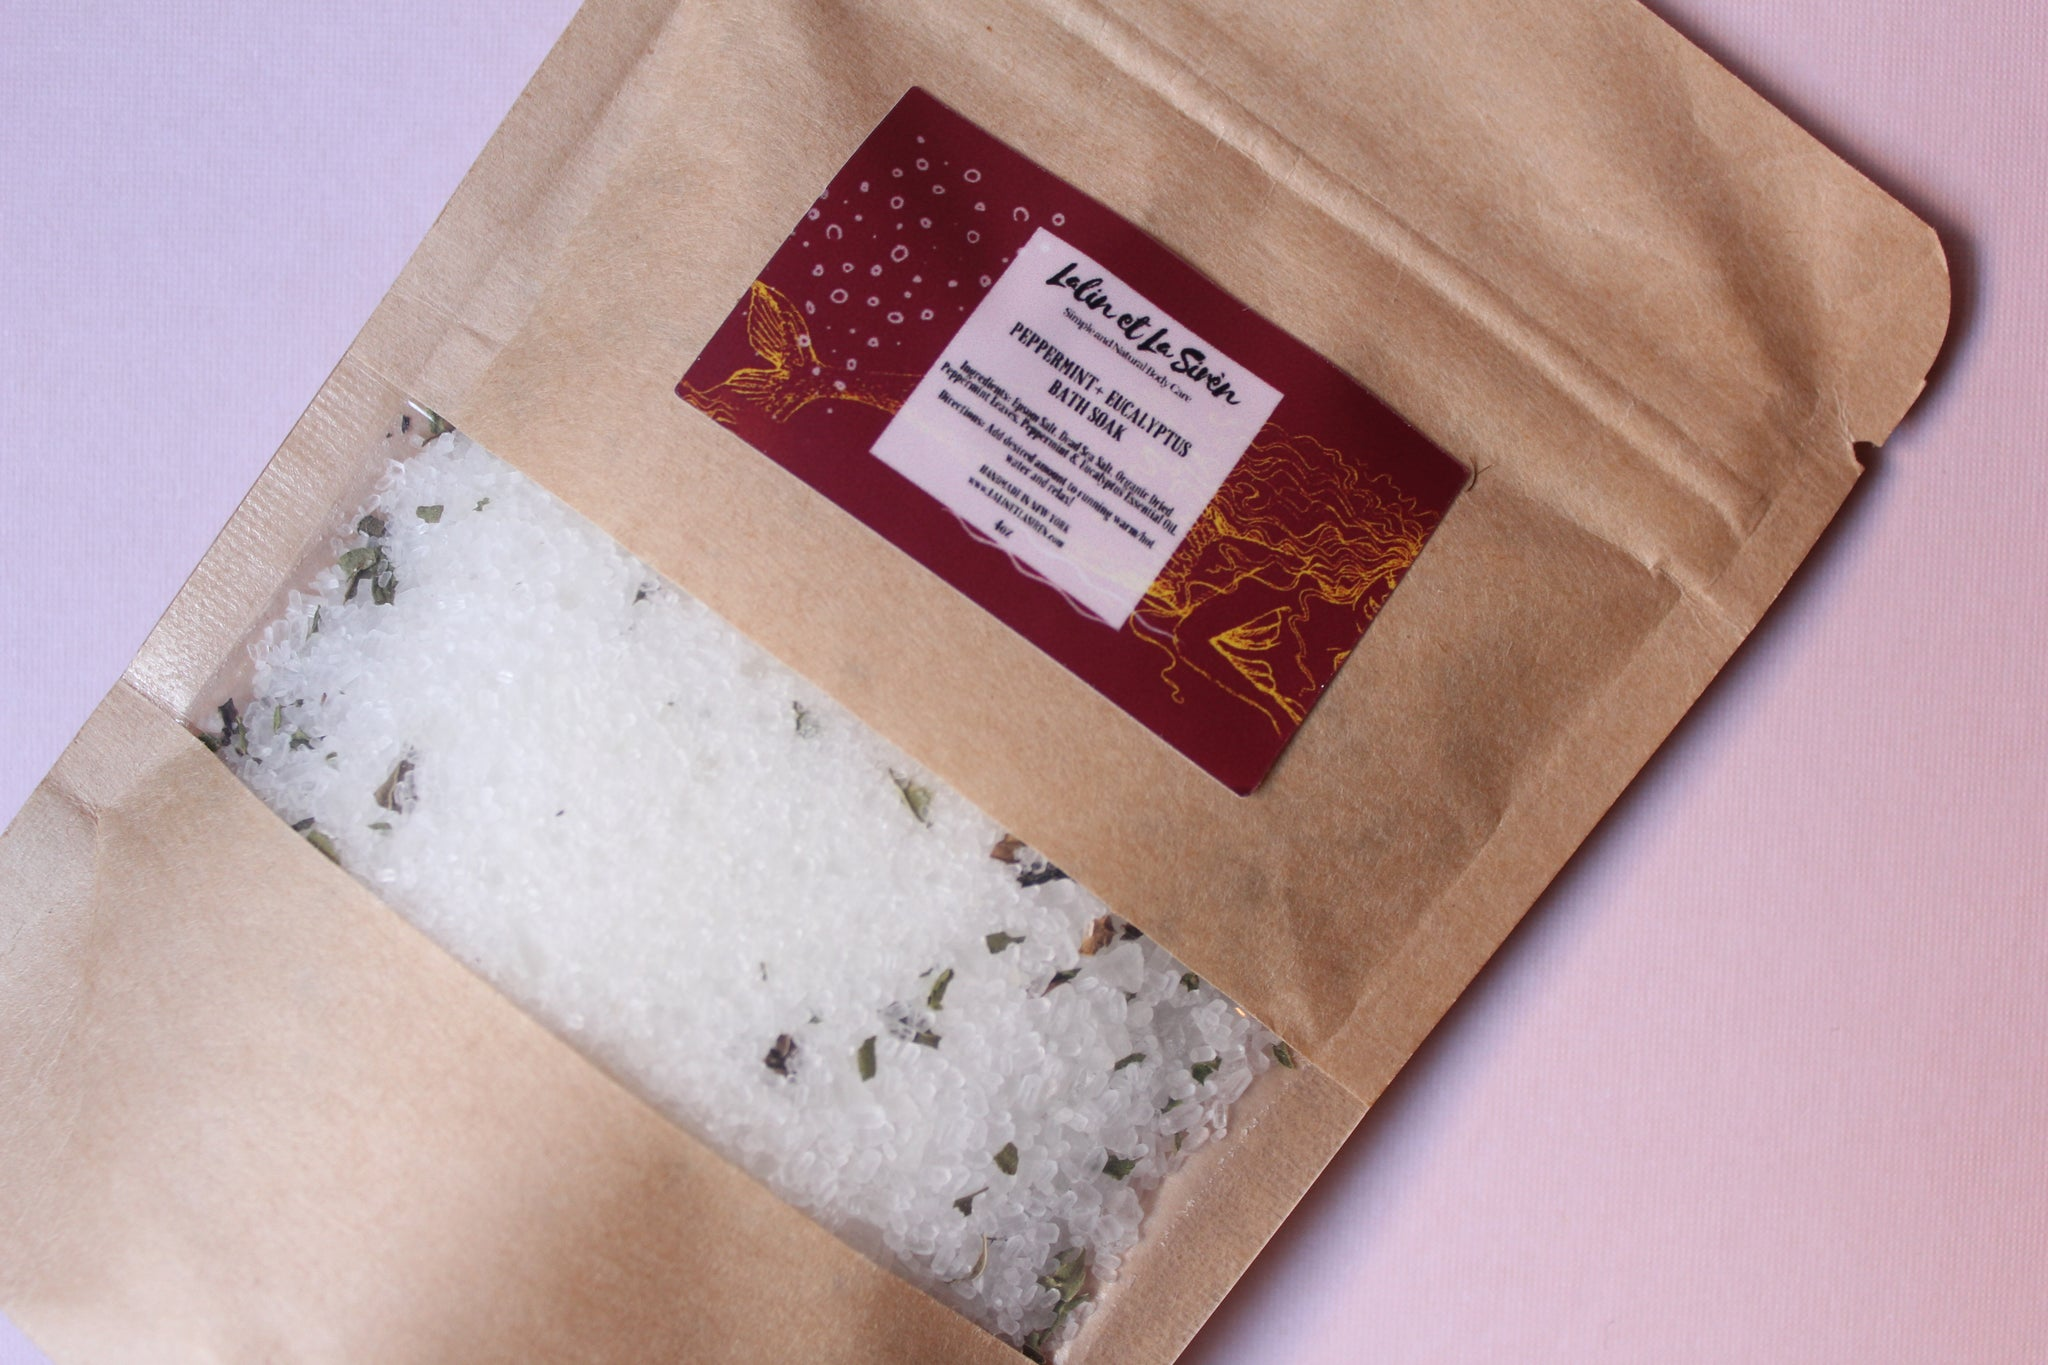 Peppermint+Eucalyptus Bath Soak